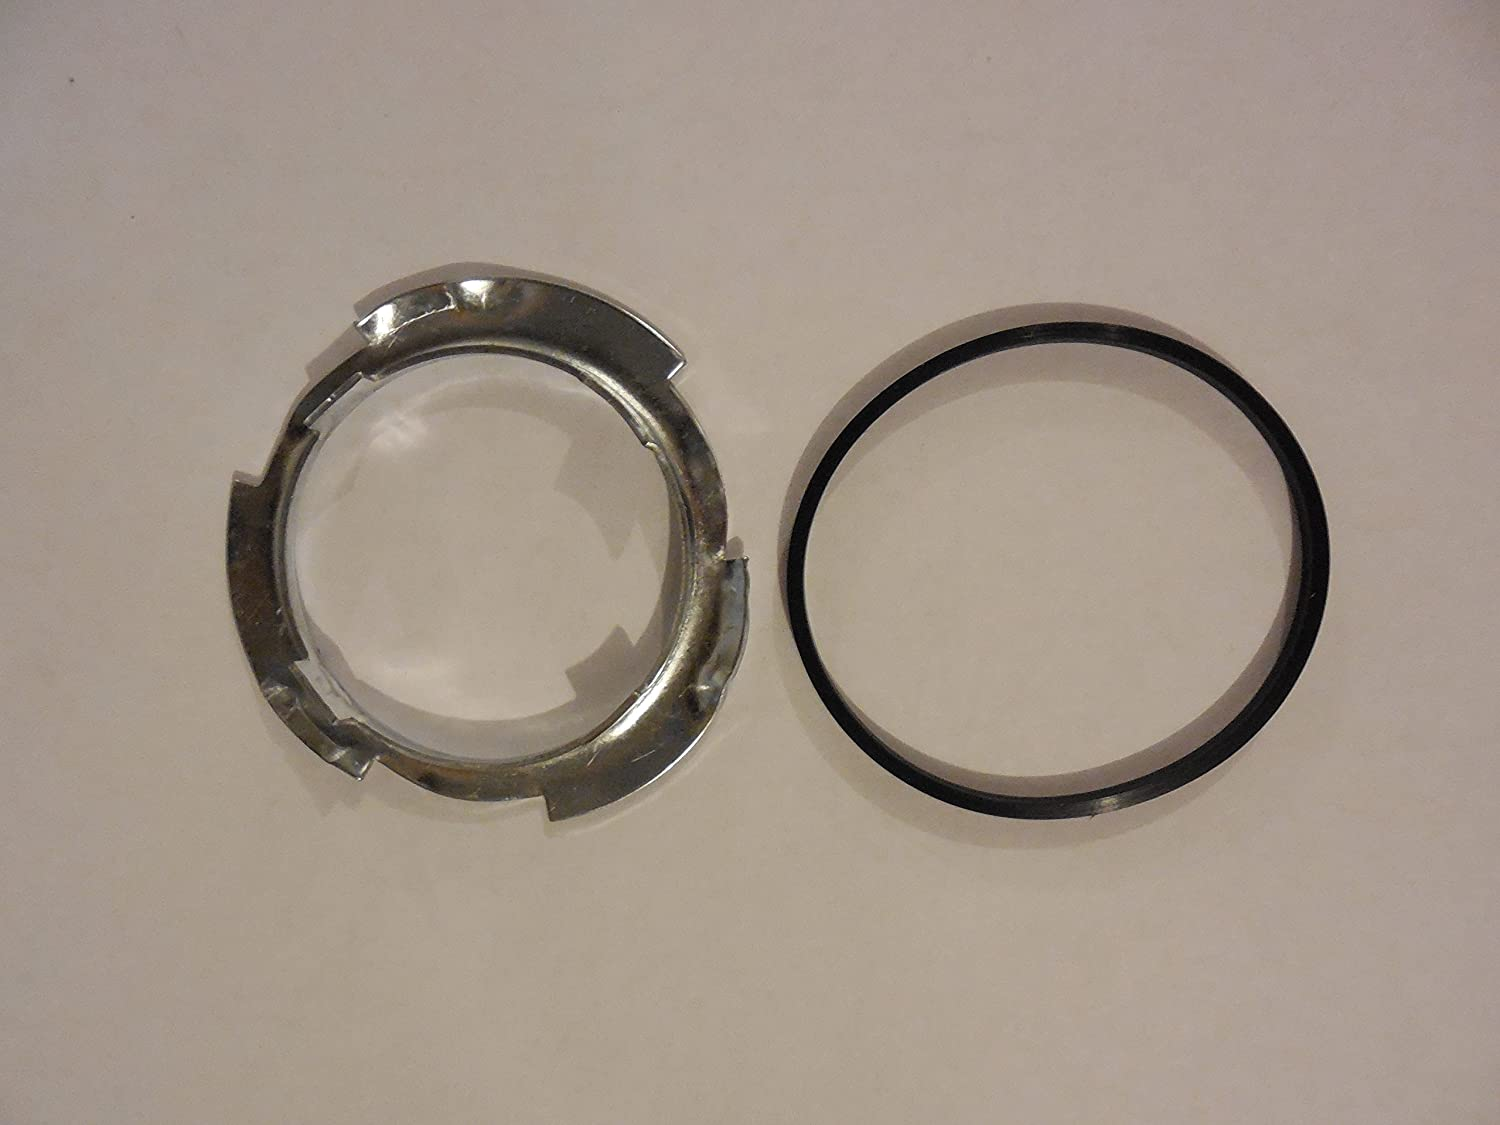 Ford Fuel Gas Tank Sending Unit Lock Ring And Seal New Rings 1964 Falcon Seals Amazon Canada